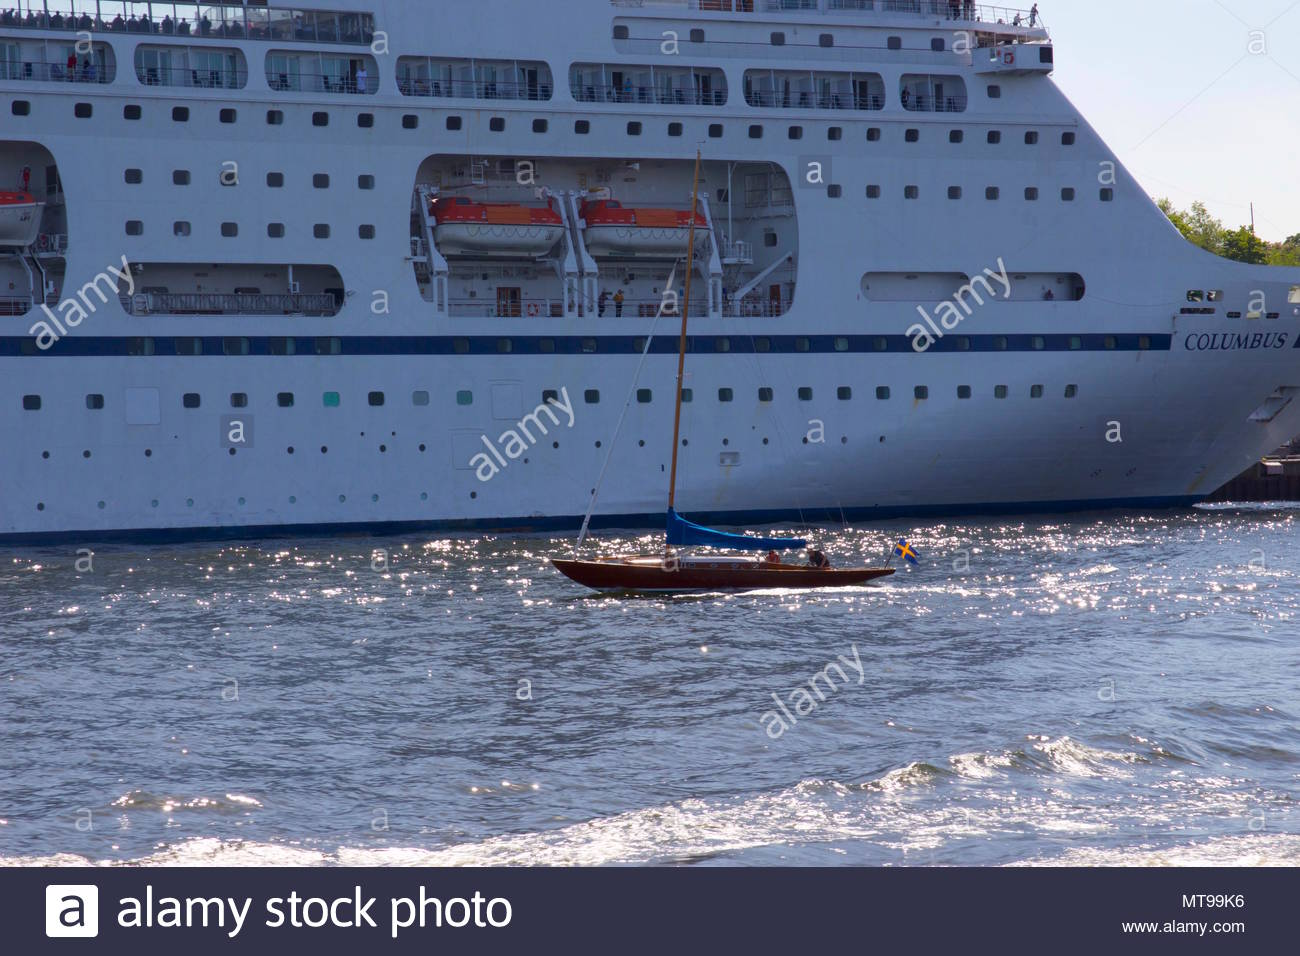 The Viking Line Cruise Ship next to a small wooden sail boat with a Swedish flag on the Baltic Sea in Stockholm, Sweden - Stock Image